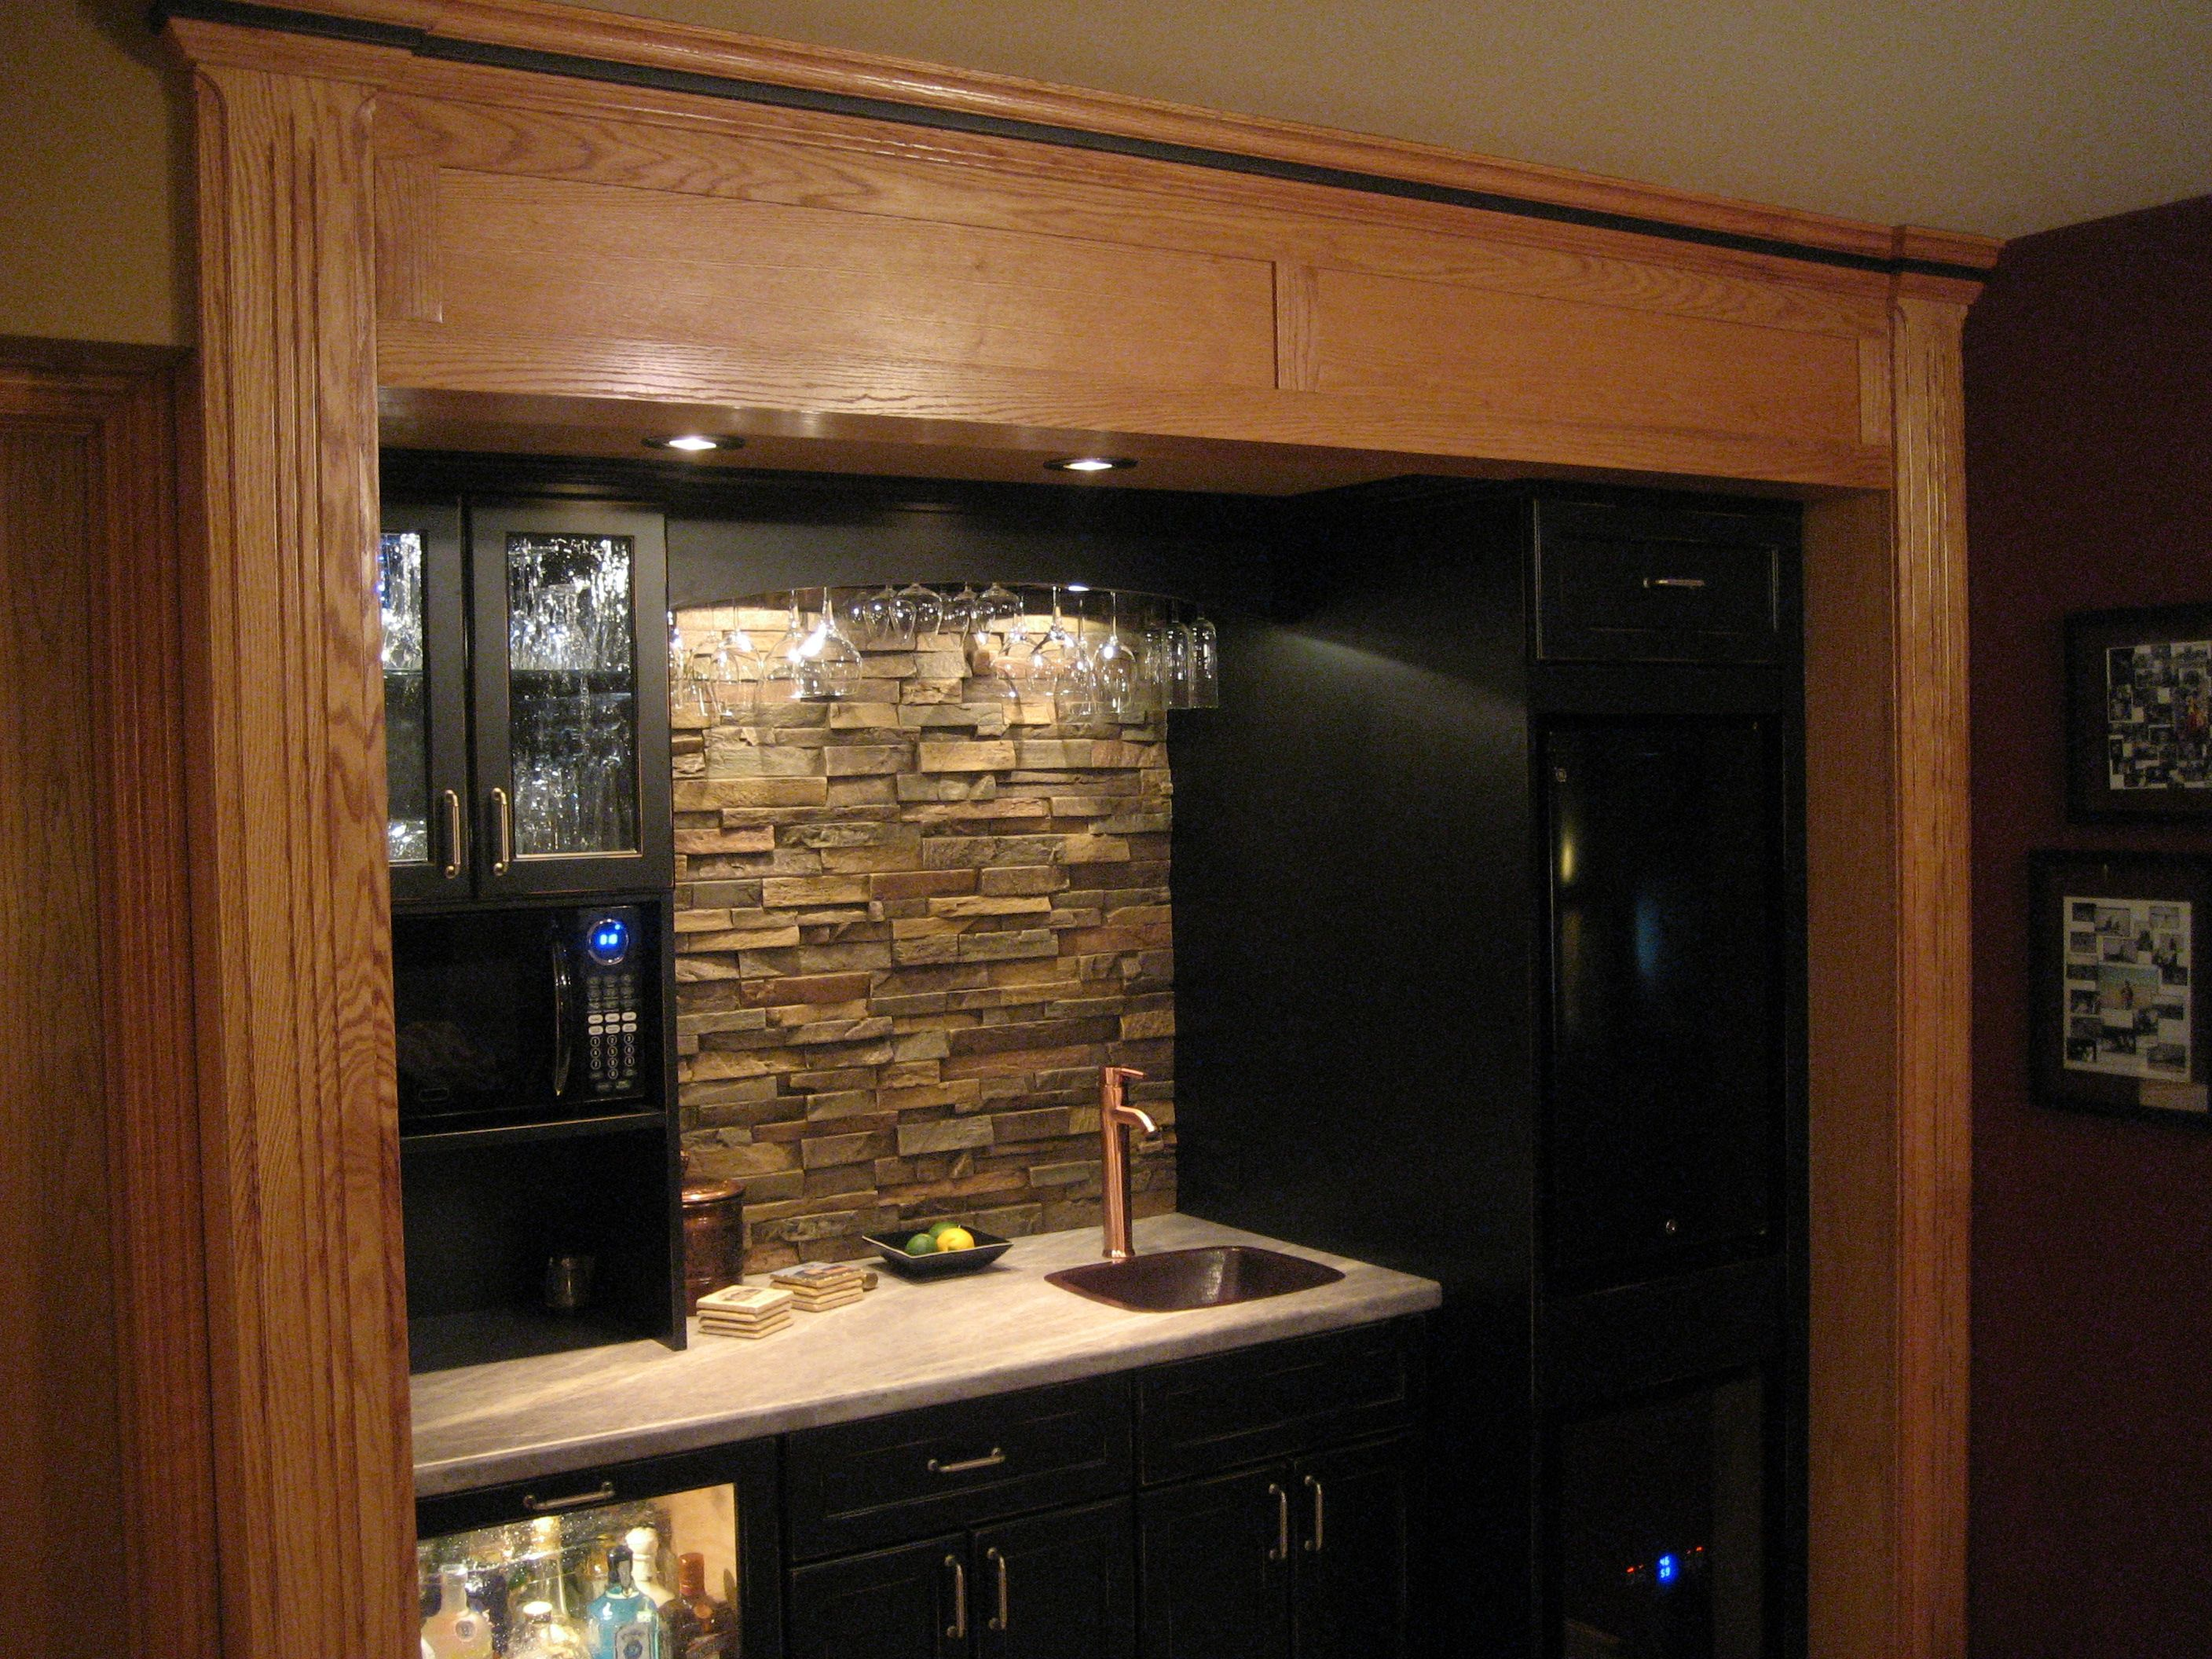 Kitchen Backsplash Panel Stone Backsplash Ideas For Kitchen Adding Stone Veneer Into The